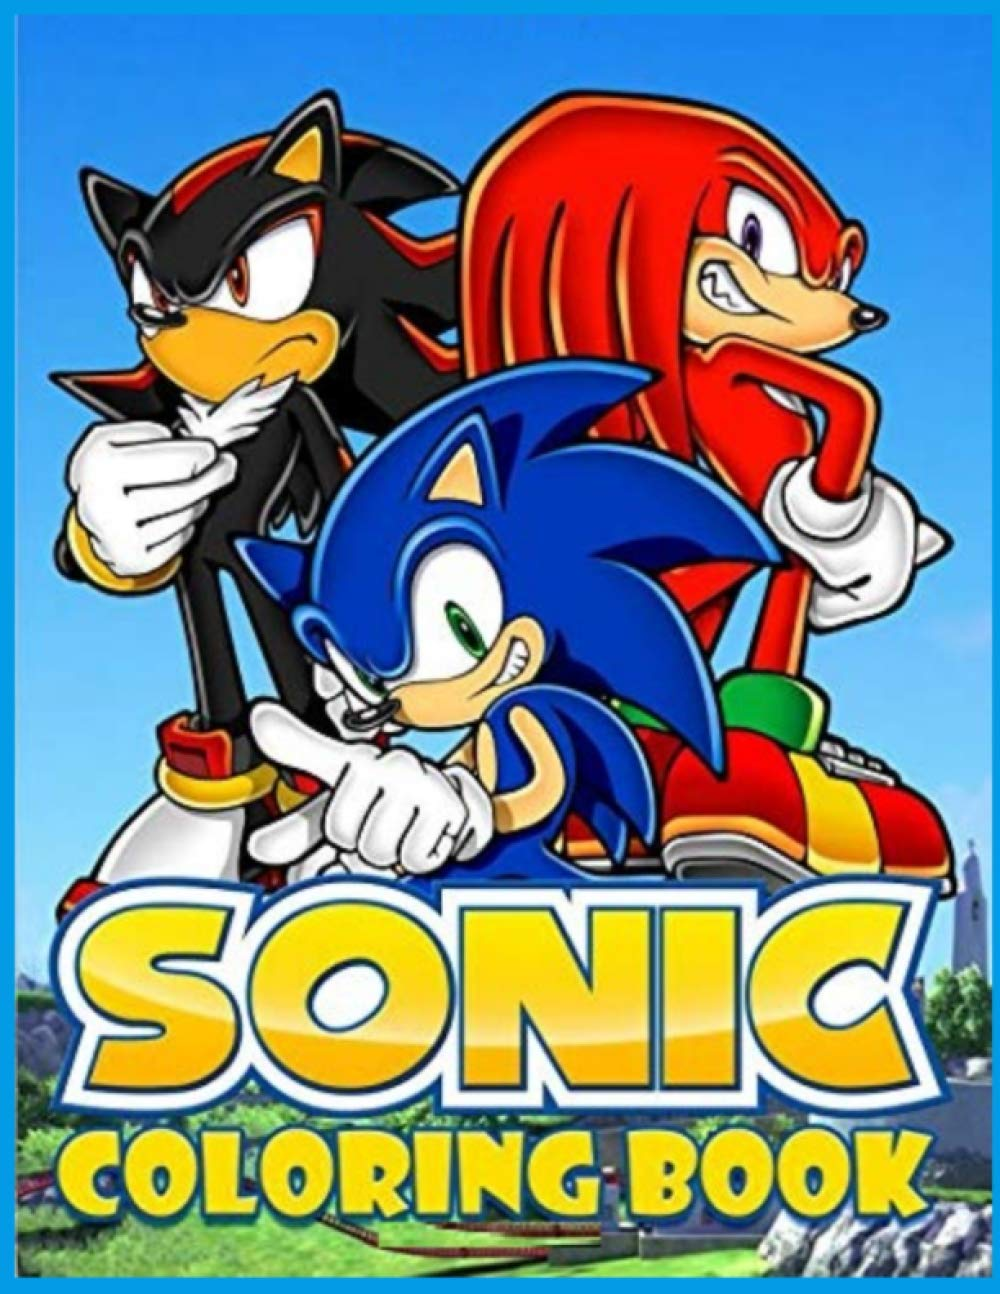 Sonic Coloring Book: The Hedgehog Sonic Coloring & Activity Book for Kids All Ages / Perfect Gift for Children / +70 High Quality Images / Best Book Ever